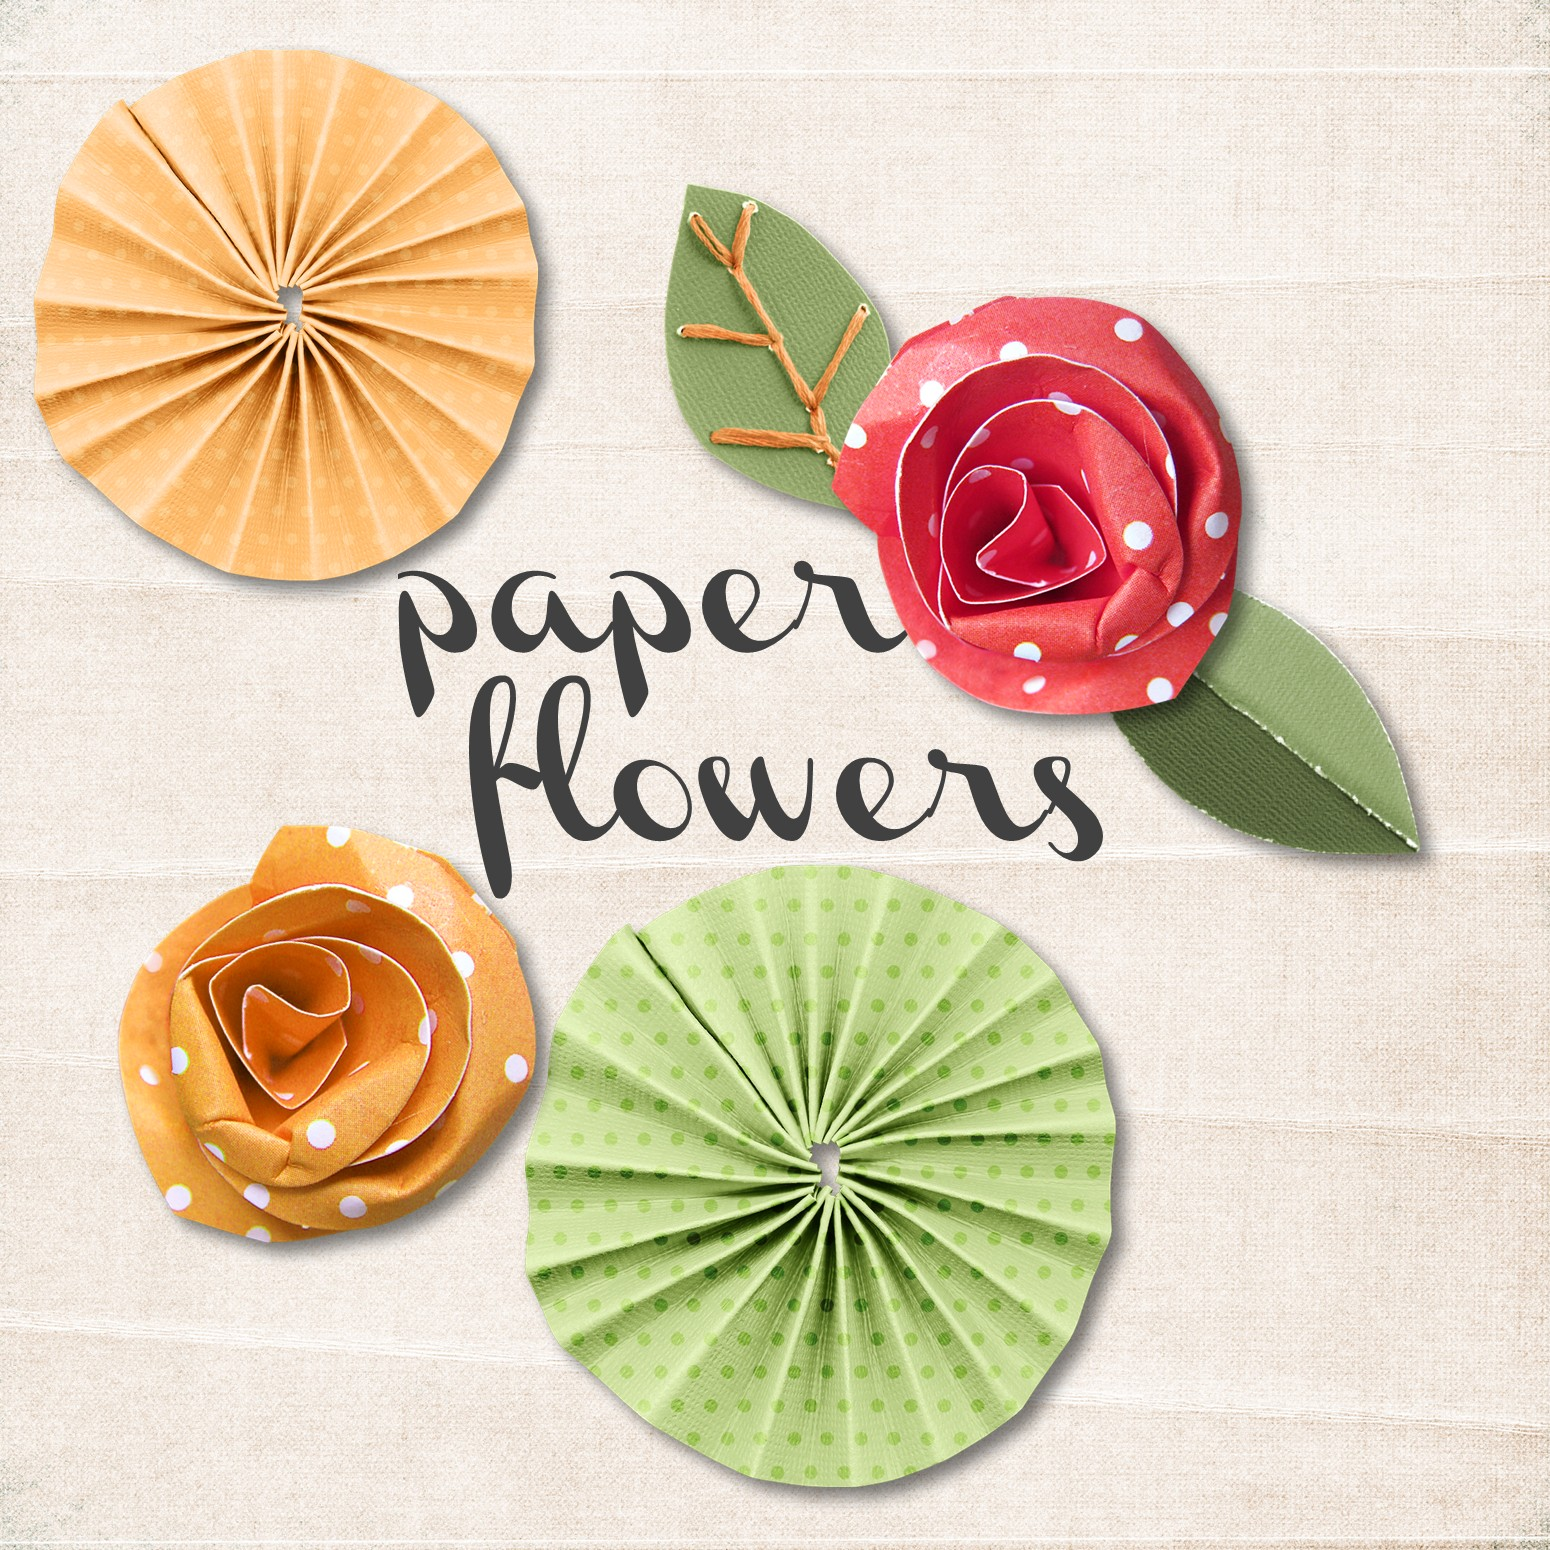 How to scrapbook pages - I Ve